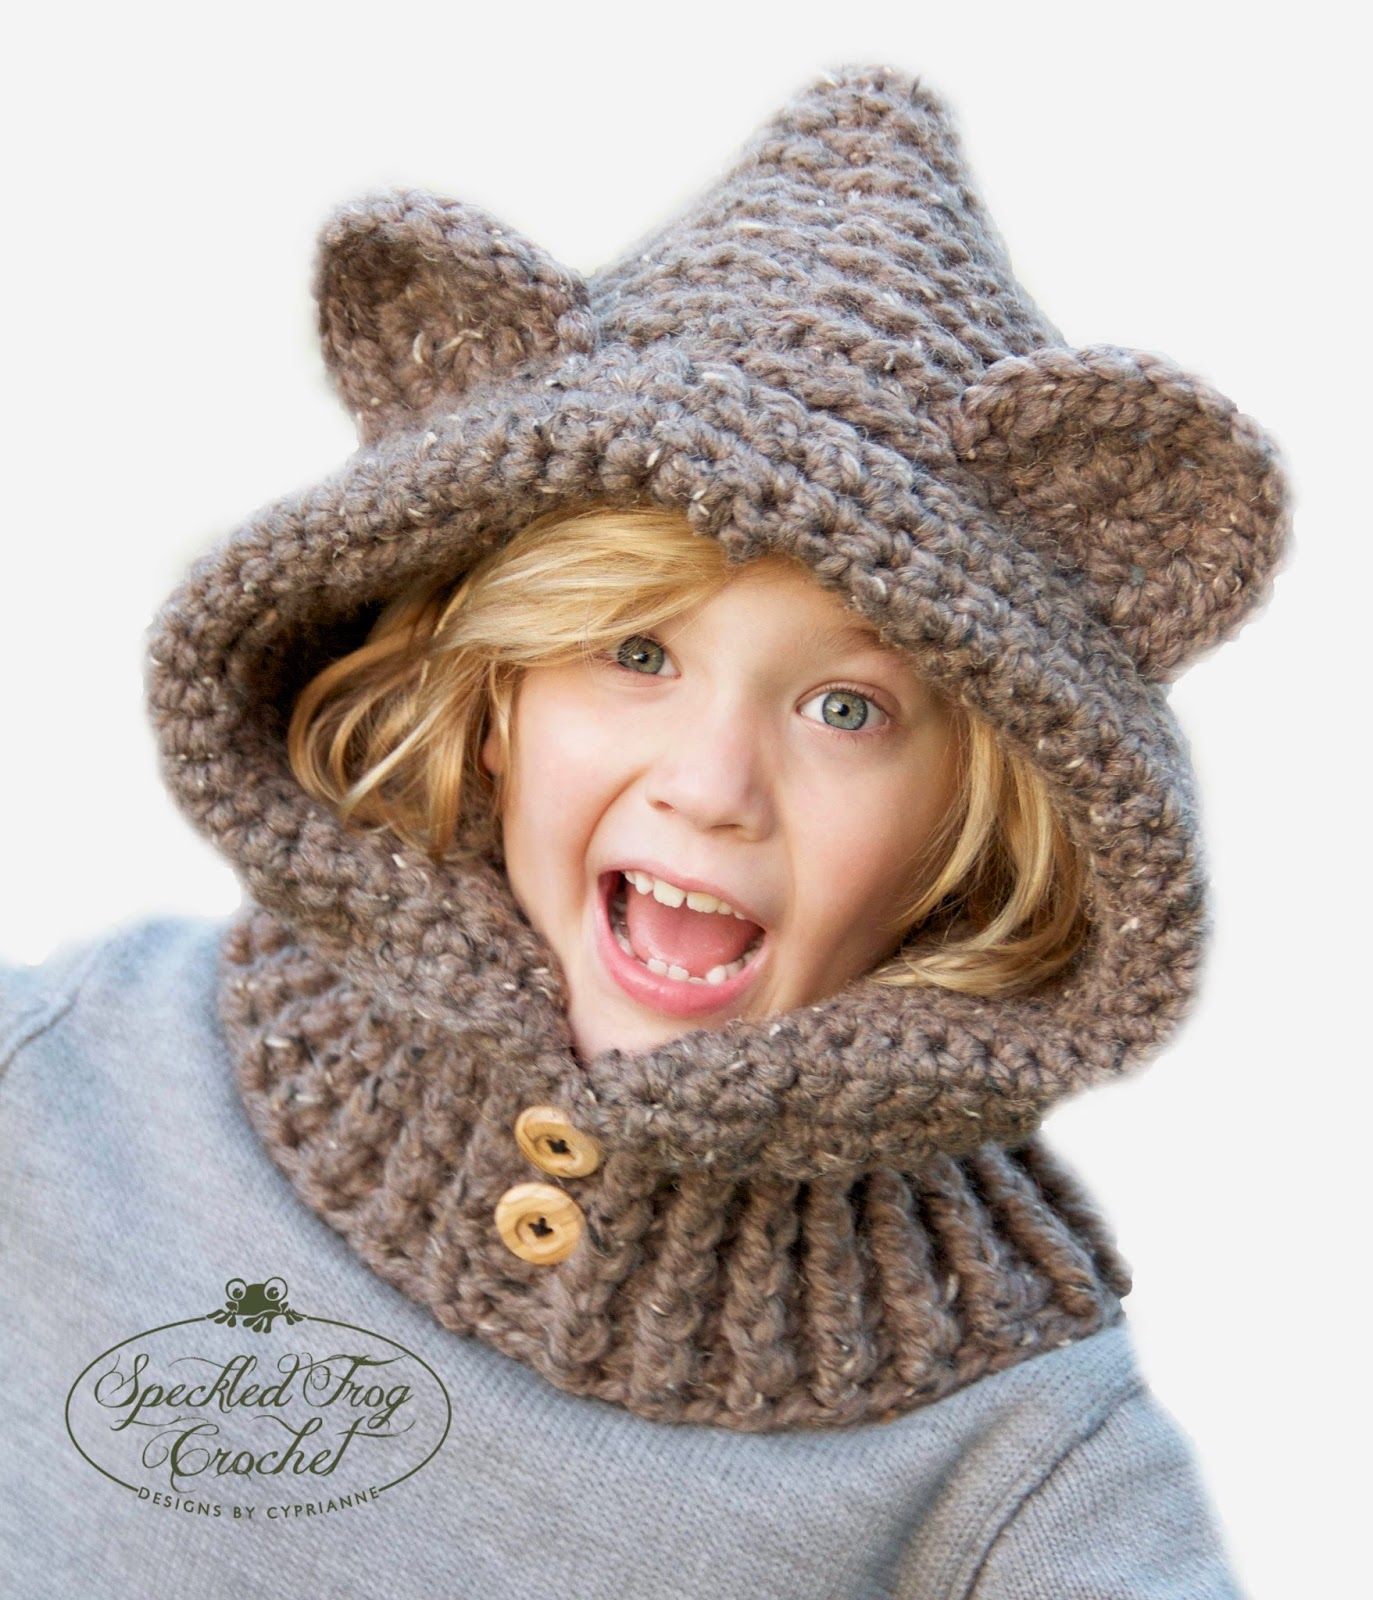 Crochet hooded bear cowl pattern click here for pattern and finished items bankloansurffo Images